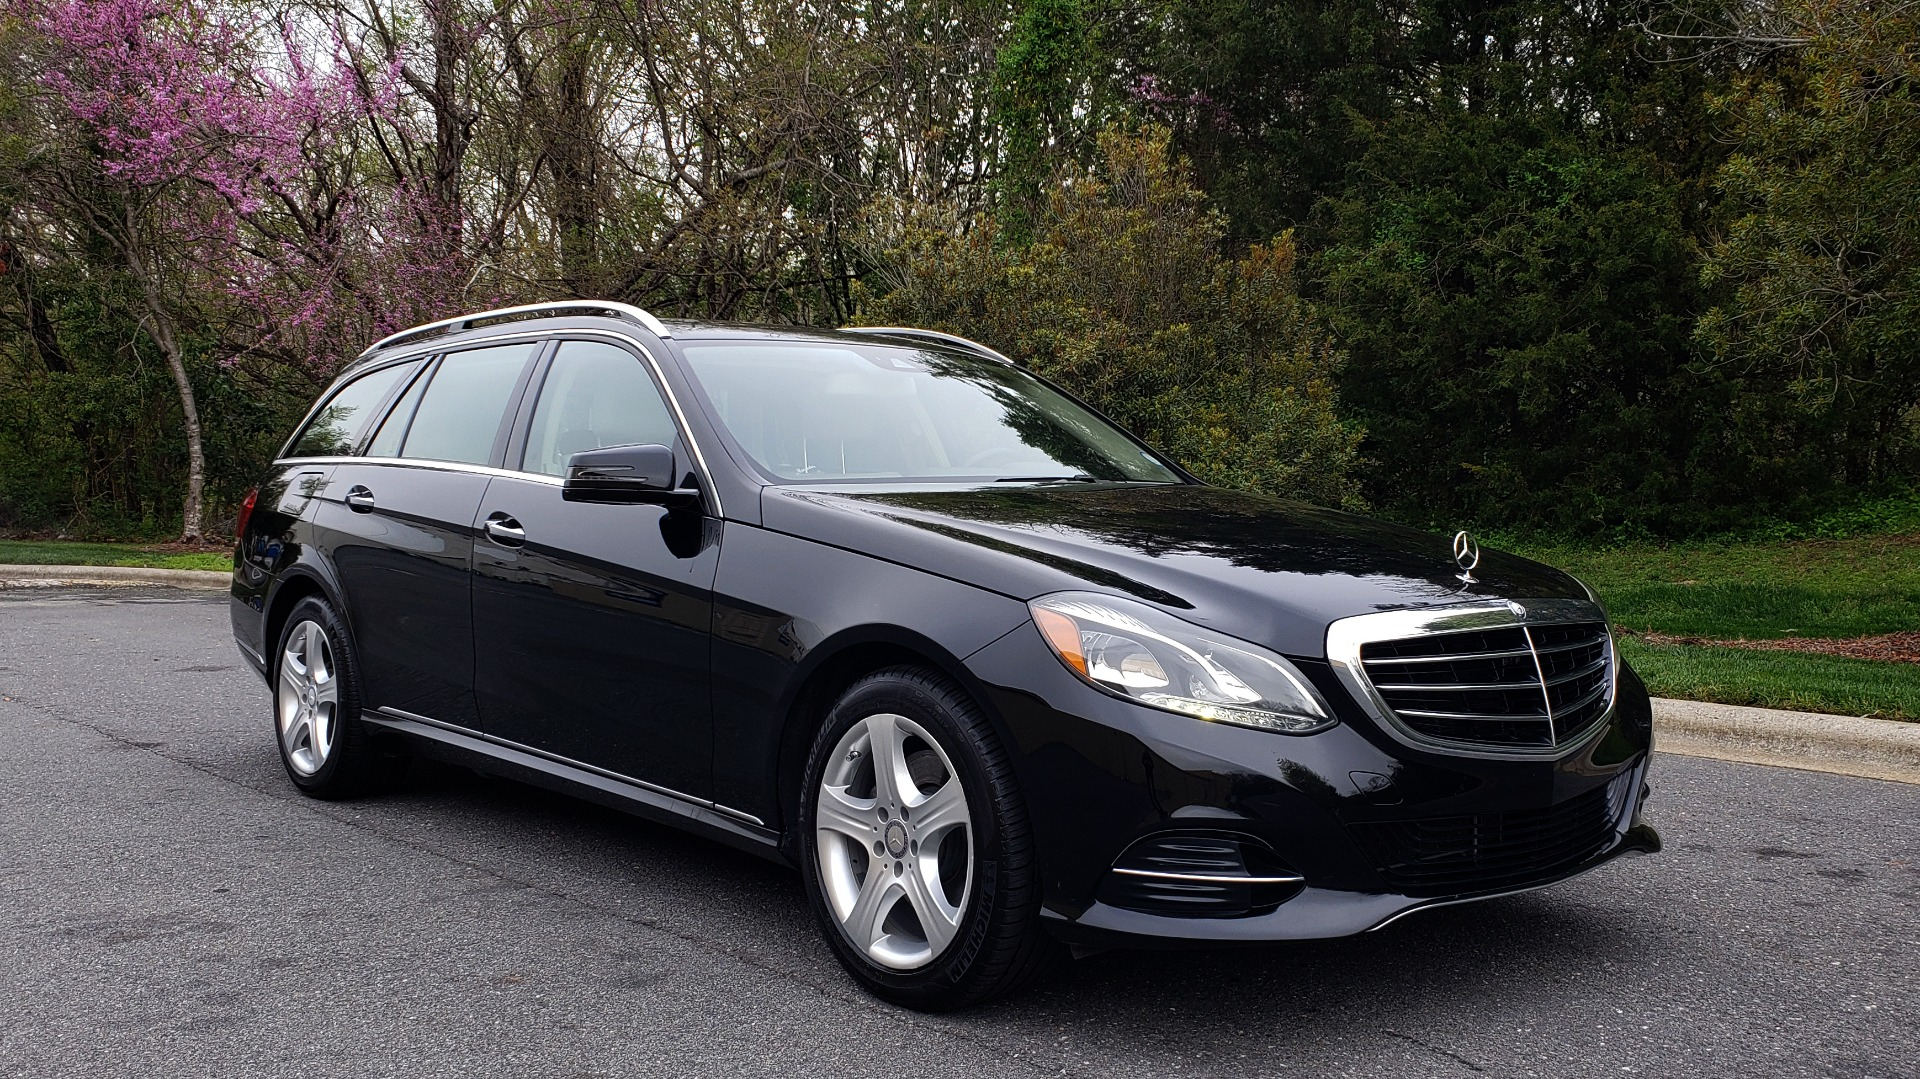 Used 2014 Mercedes-Benz E-Class E 350 4MATIC PREMIUM / NAV / SUNROOF / REARVIEW / 3-ROW for sale Sold at Formula Imports in Charlotte NC 28227 4